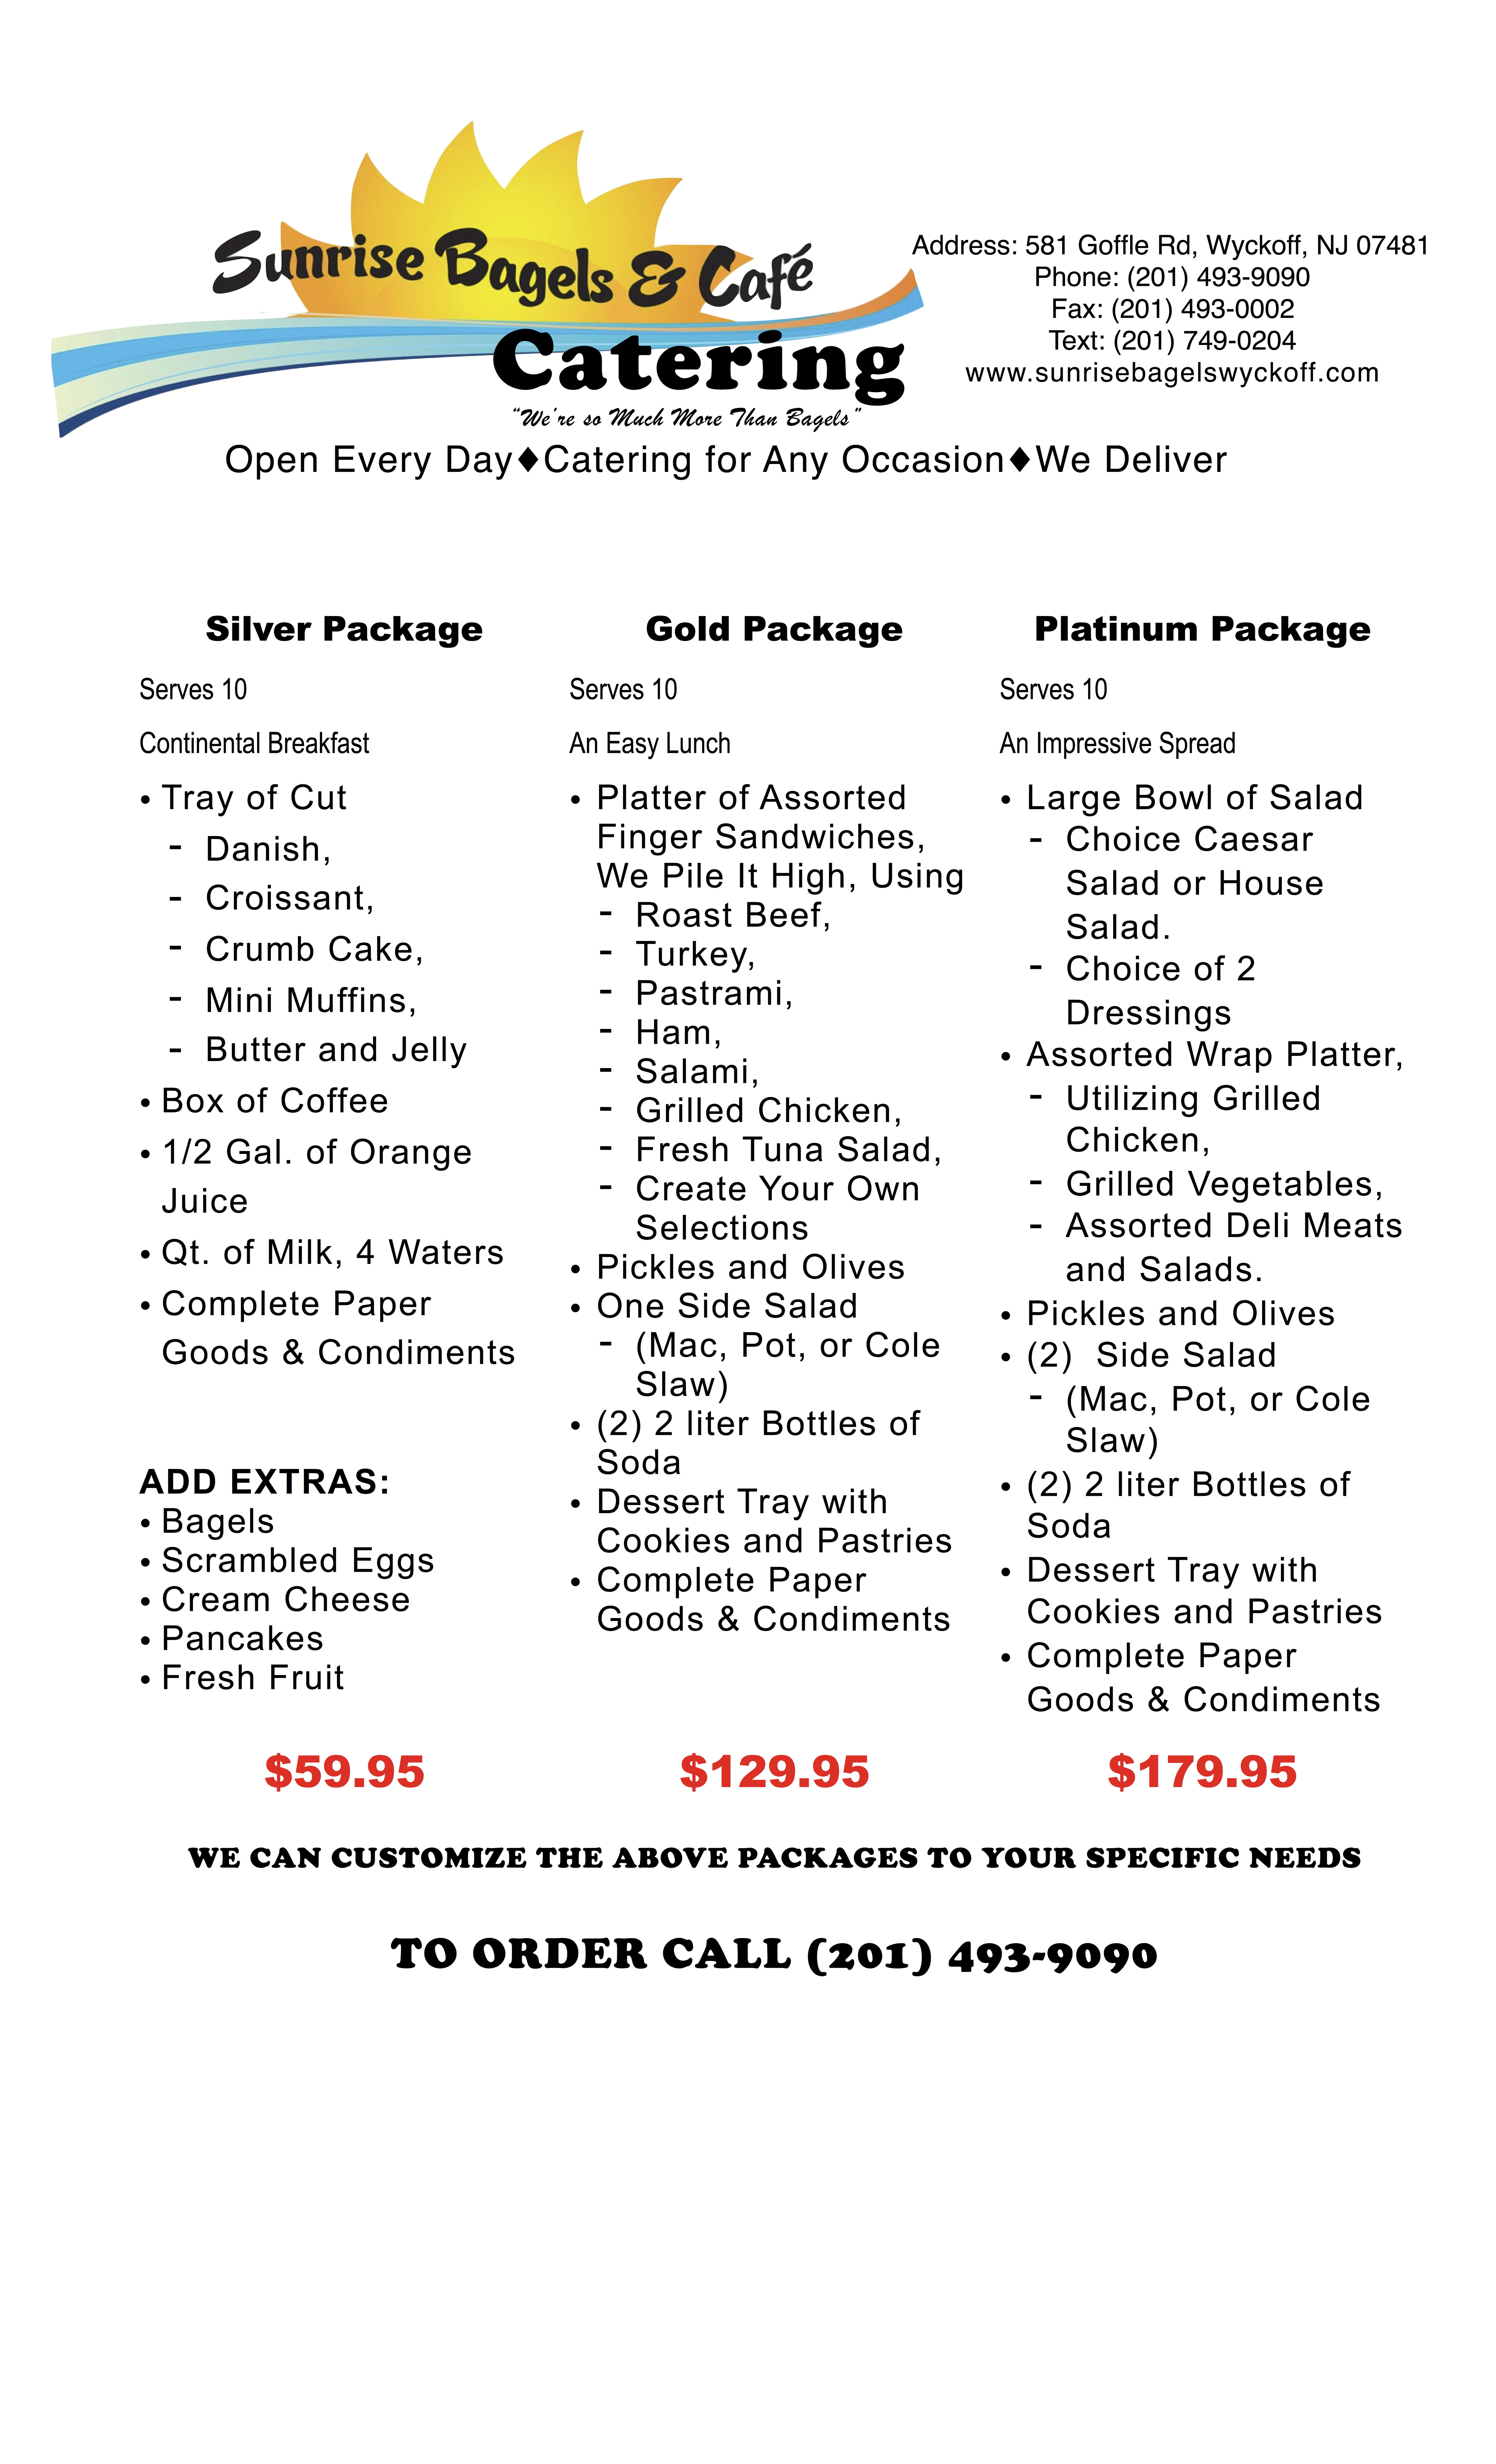 Sunrise Catering Menu